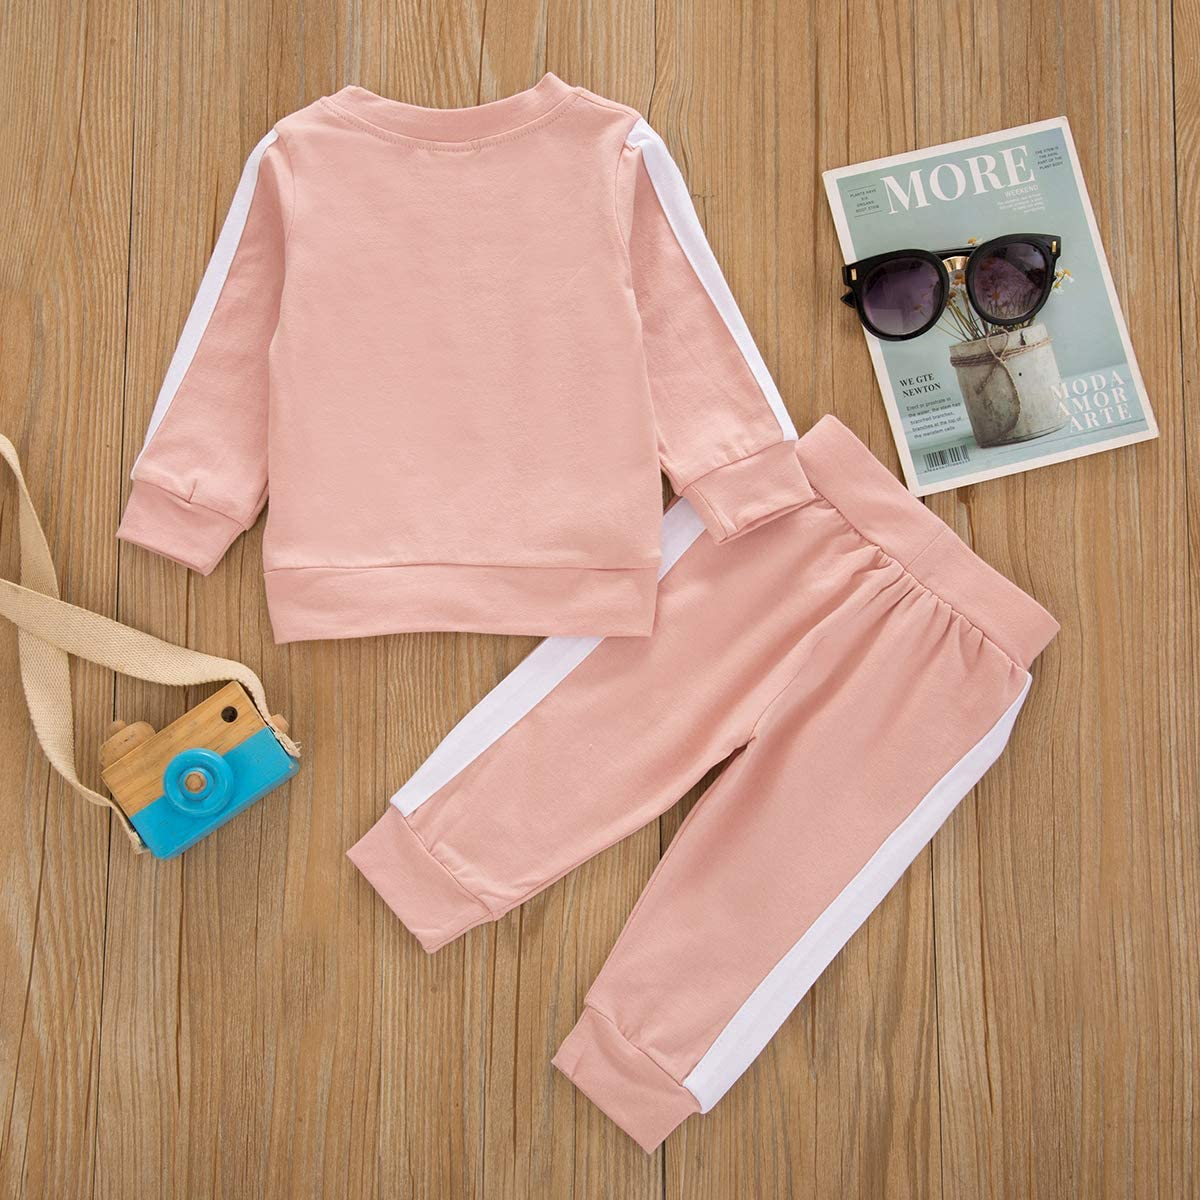 Unisex Toddler Baby Boy Girl Spring Fall Winter Clothes Long Sleeve T-Shirt Tops+Long Pants Two Piece Solid Outfit